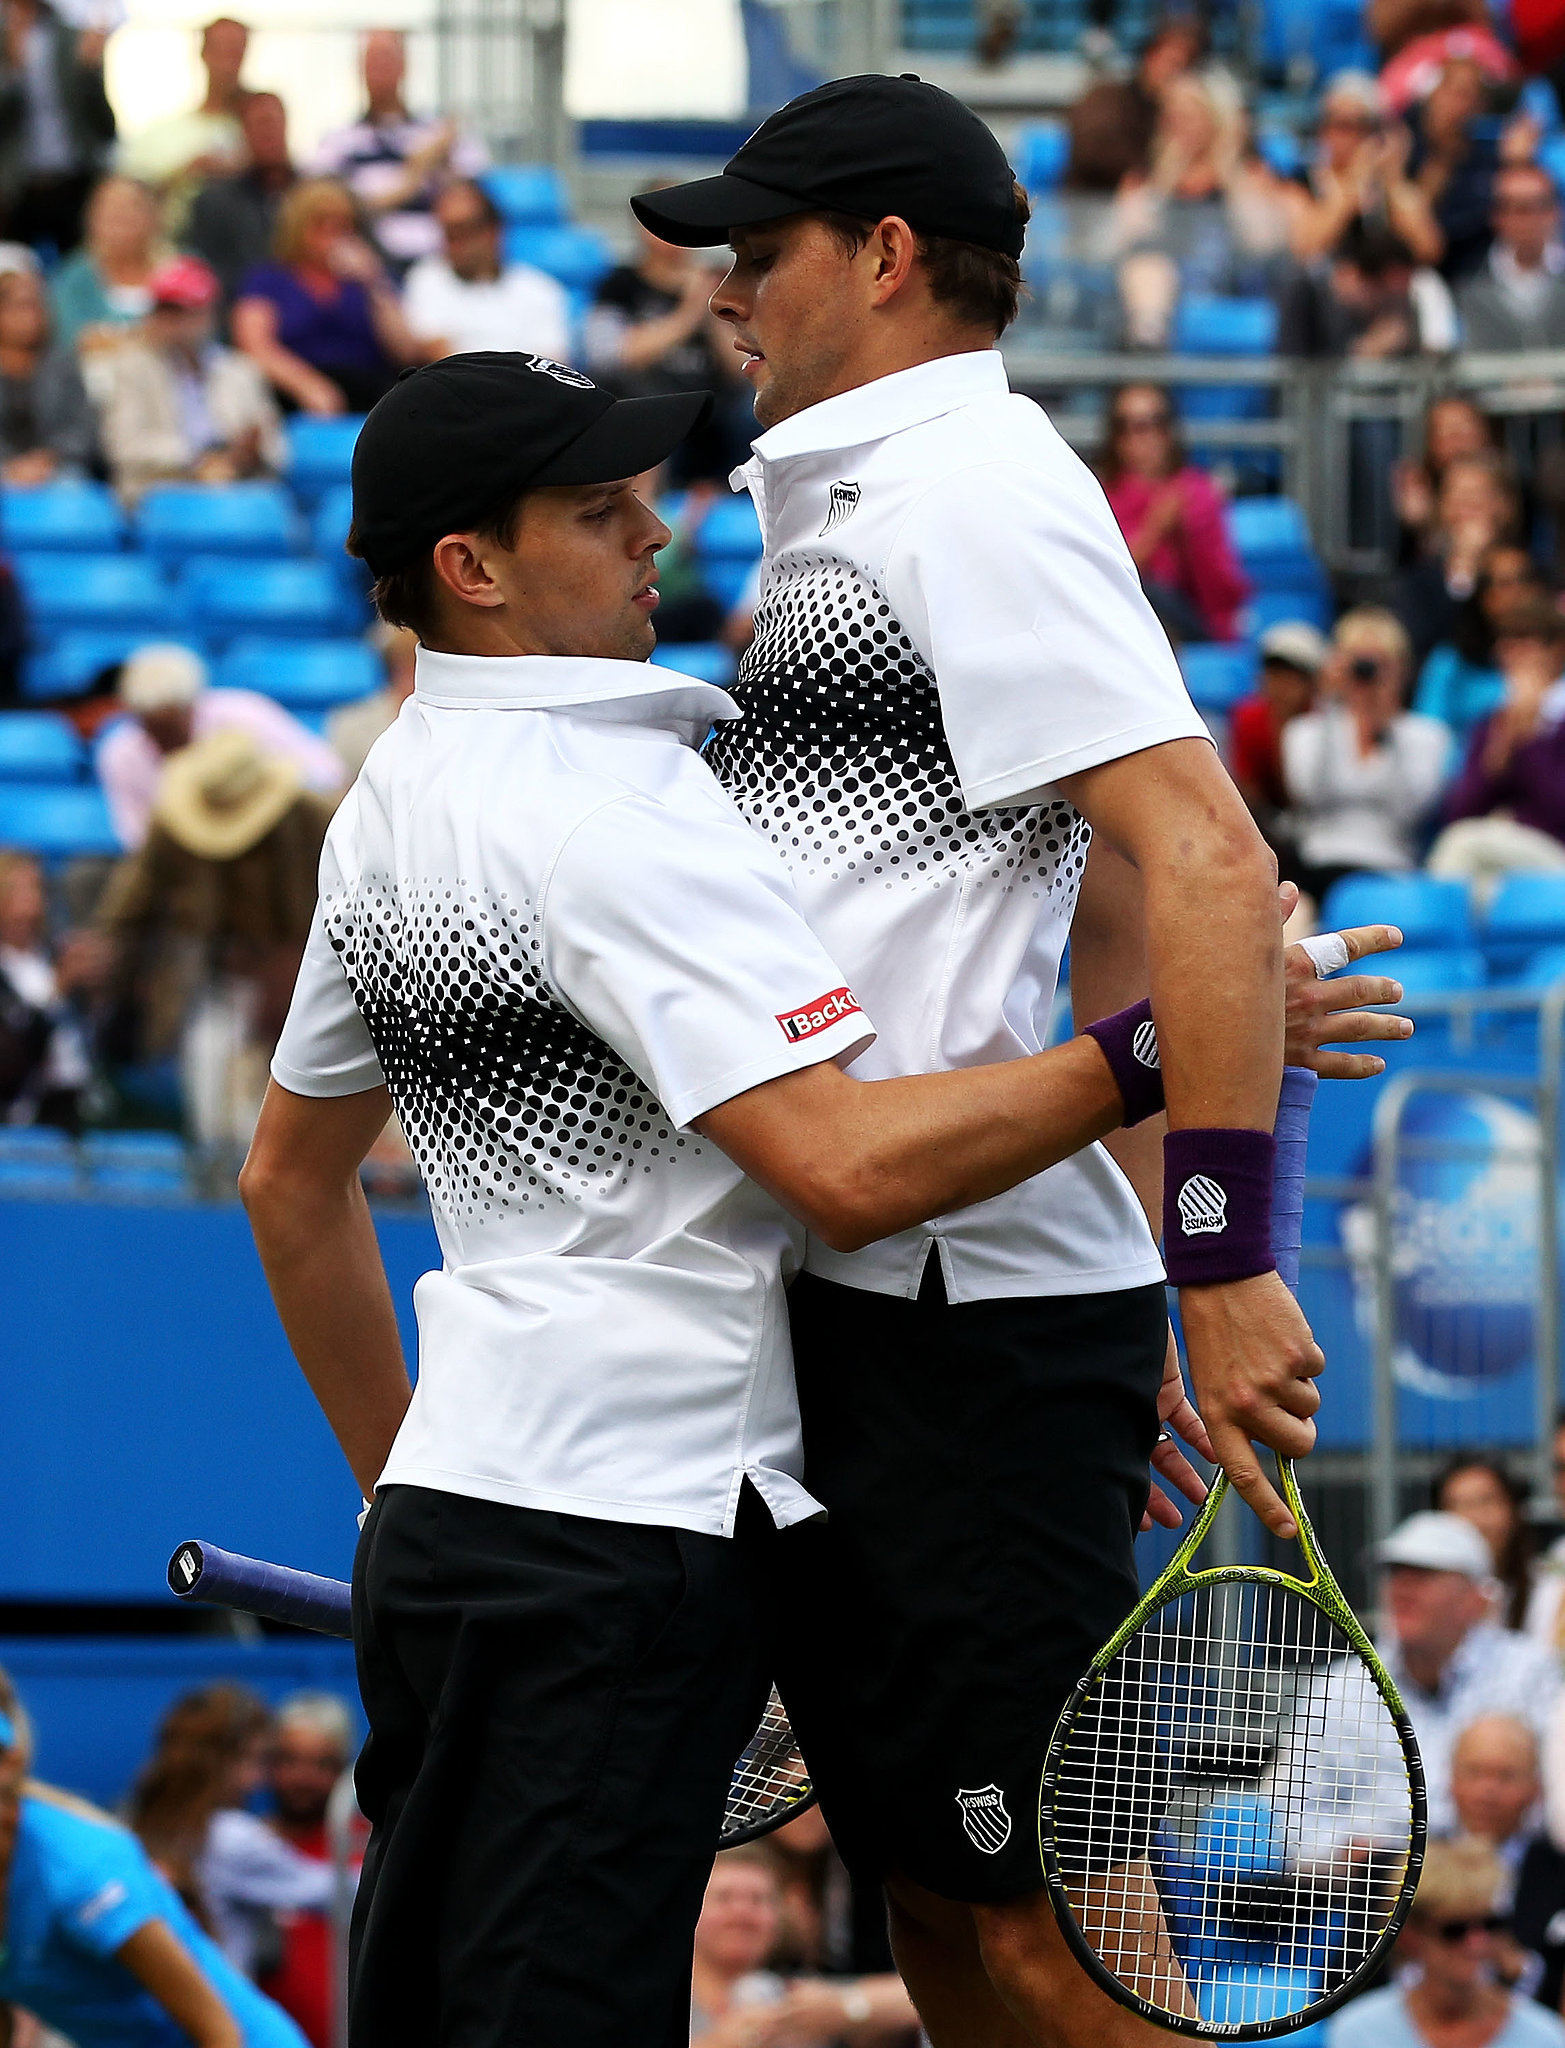 Who could resist these unbeatable twins! Bob and Mike Bryan are always stylin' on and off the court